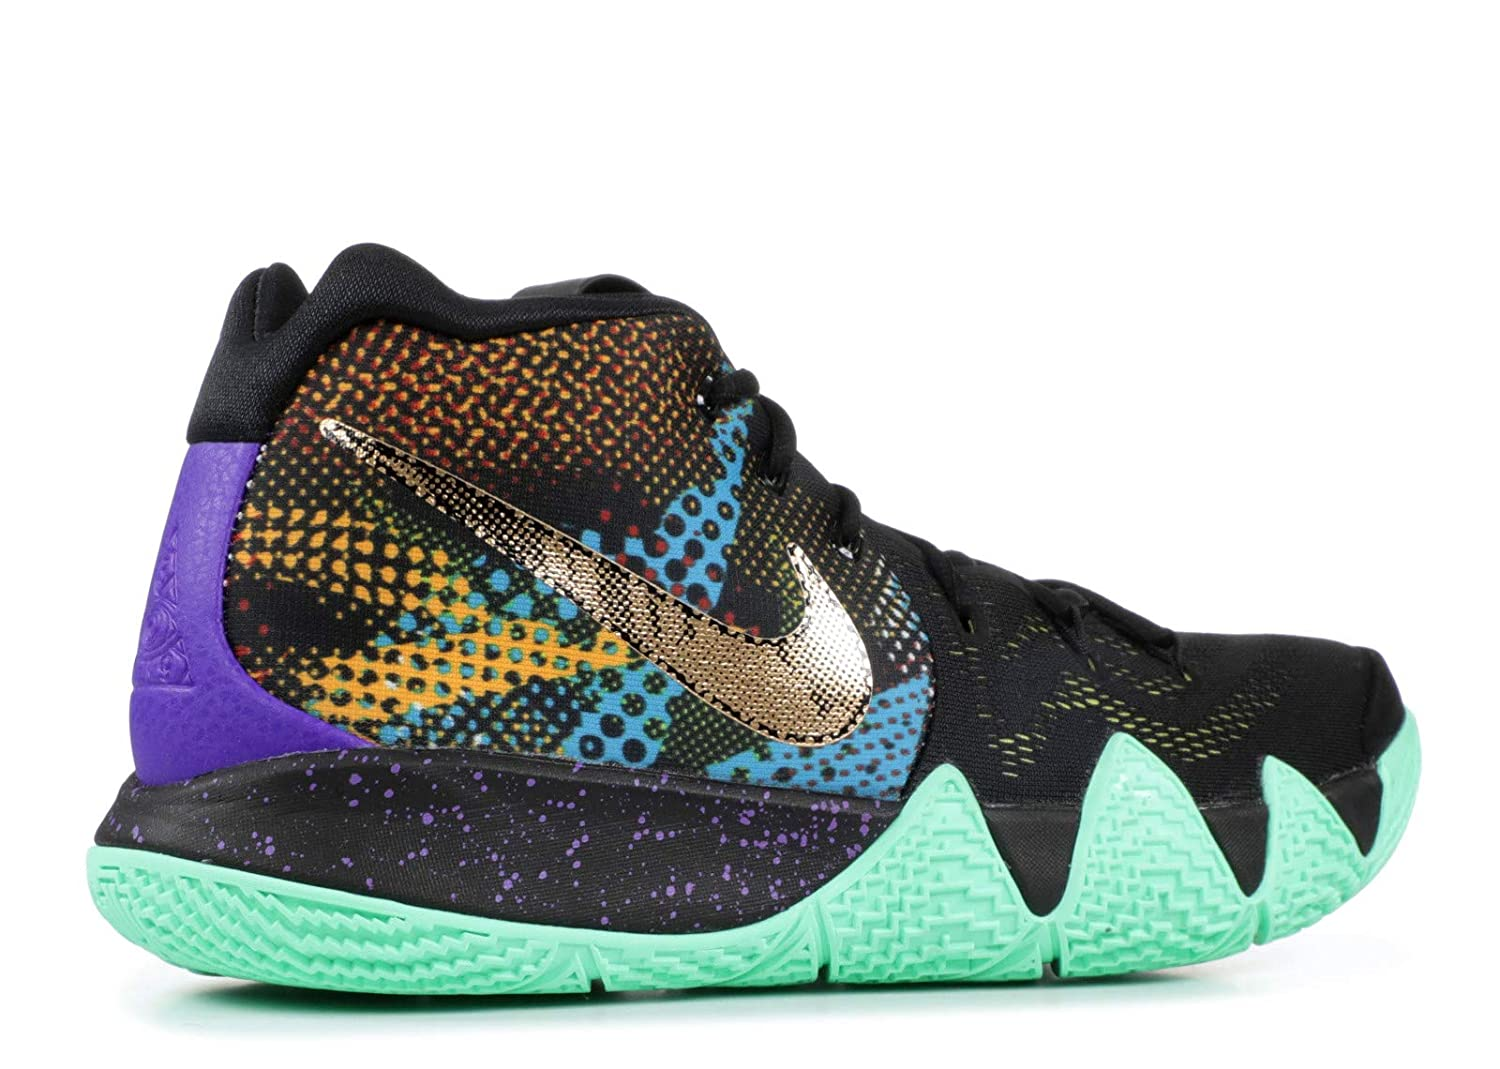 buy online 1bfbd a26c4 Nike Kyrie 4 Mamba Mens Basketball-Shoes AV2597-001_11 - Black/Sonic  Yellow-Purple Venom